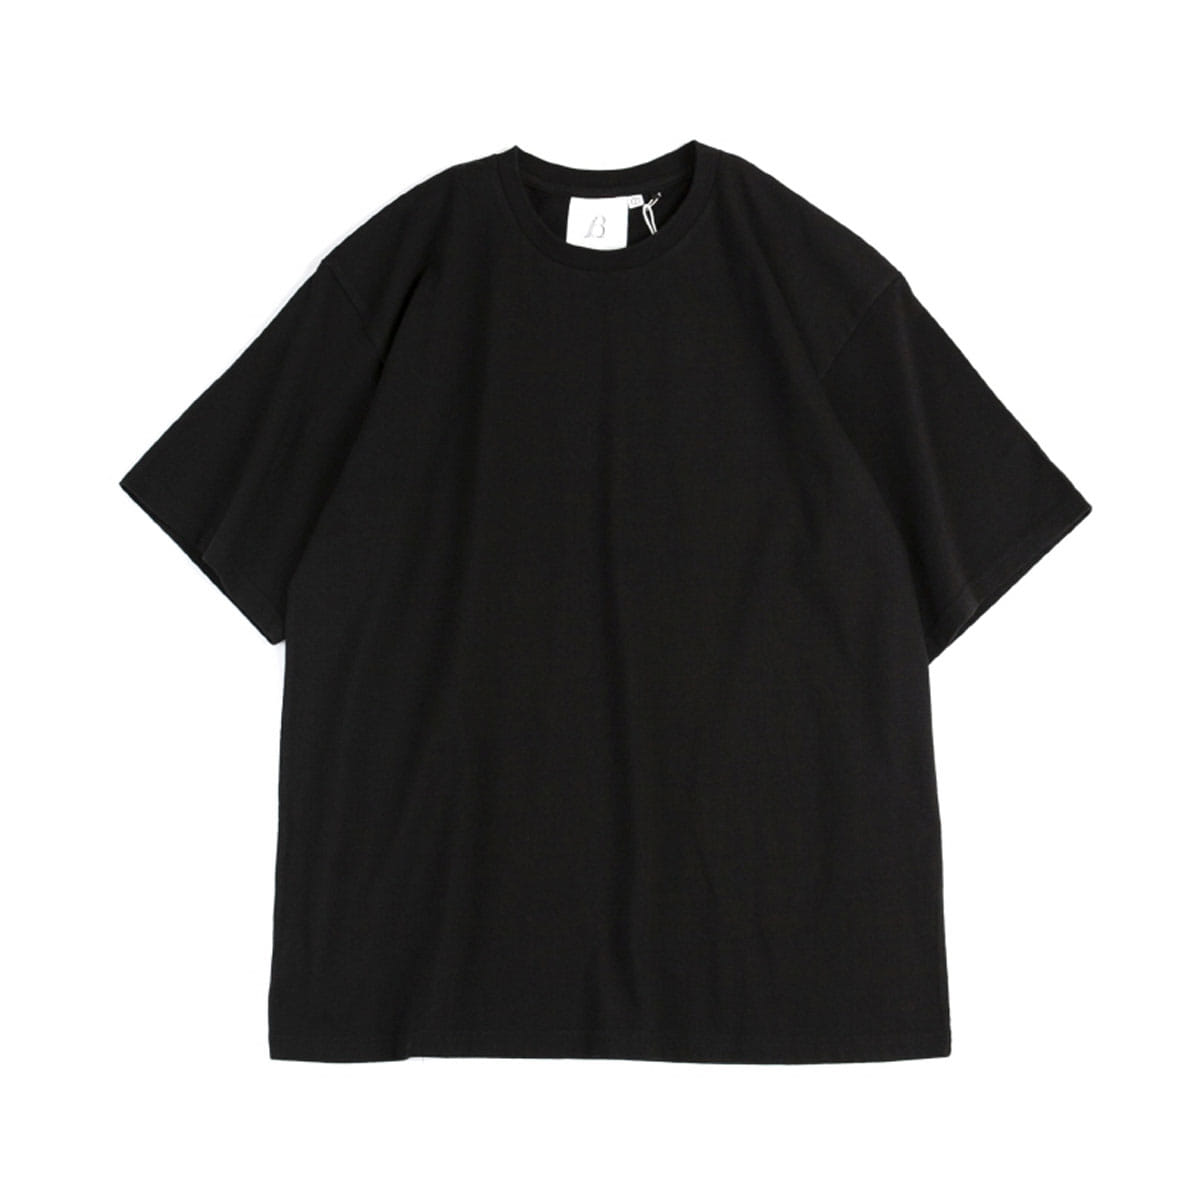 [BROWNYARD] ONE DAY T-SHIRT 'BLACK'